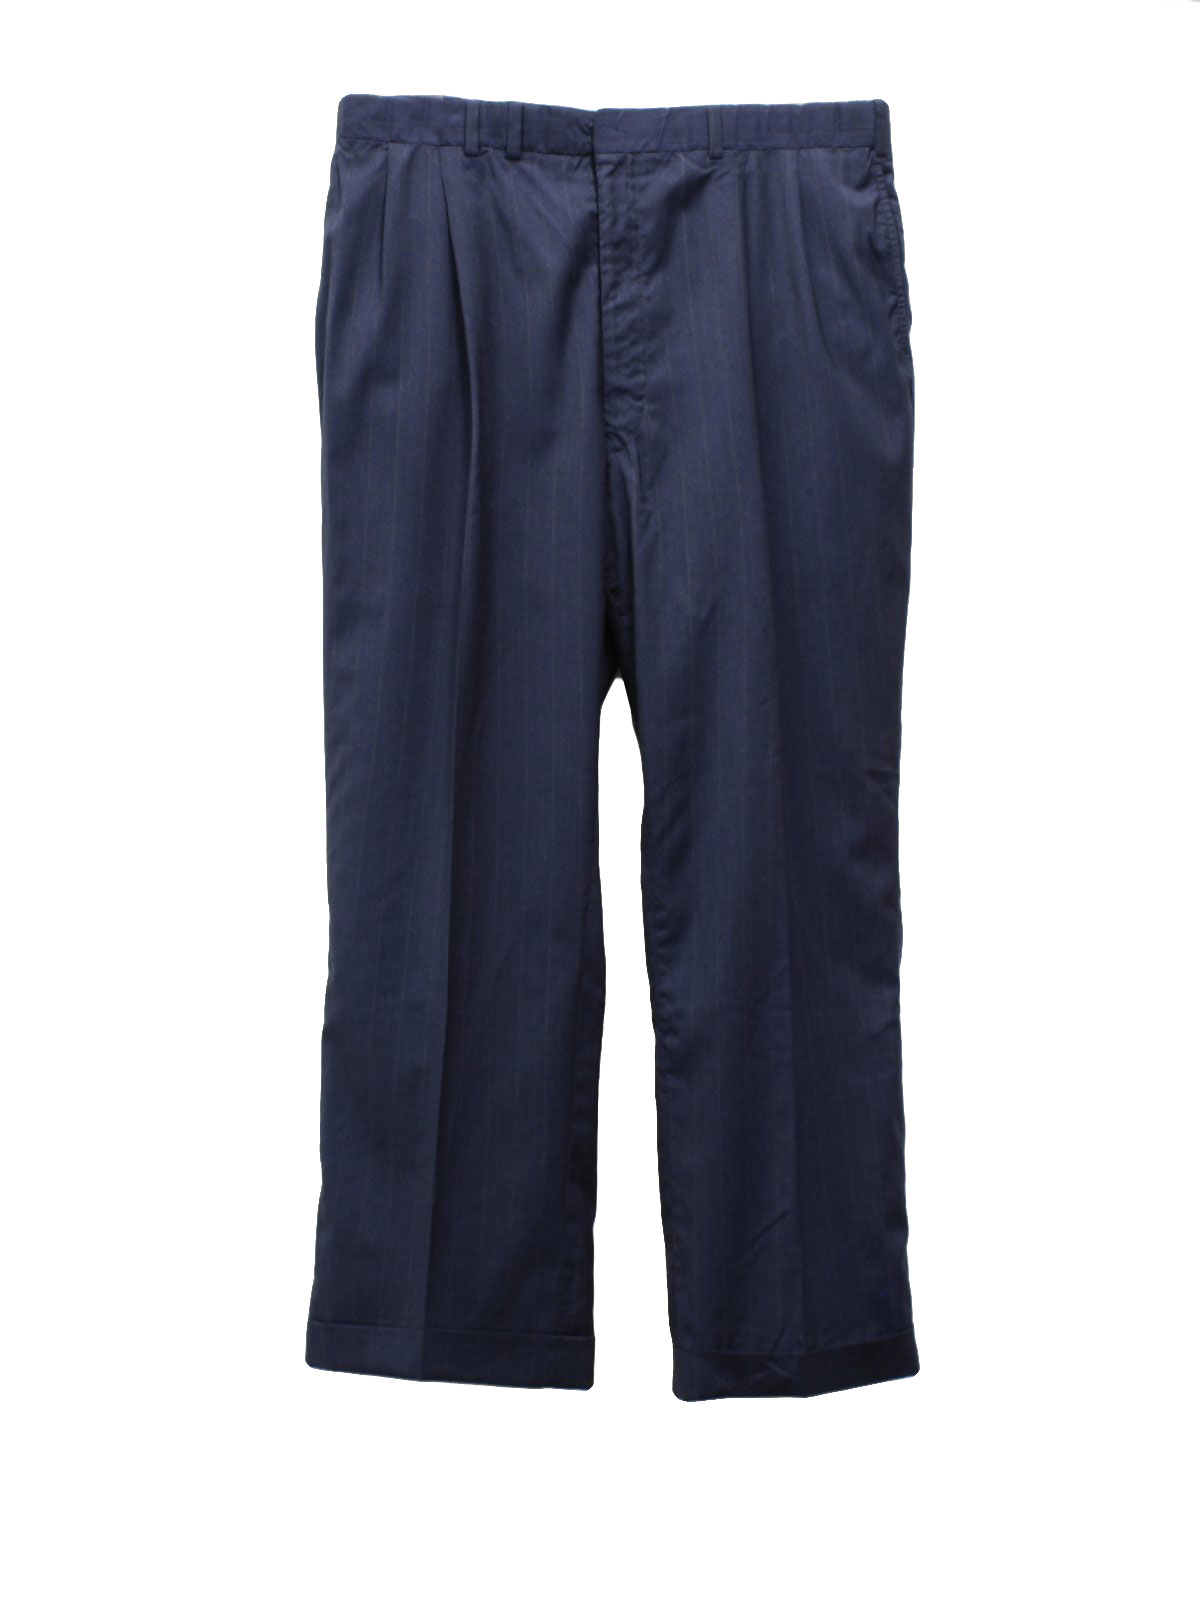 1950 s mens wool slacks pants 50s missing label mens dark blue and ...